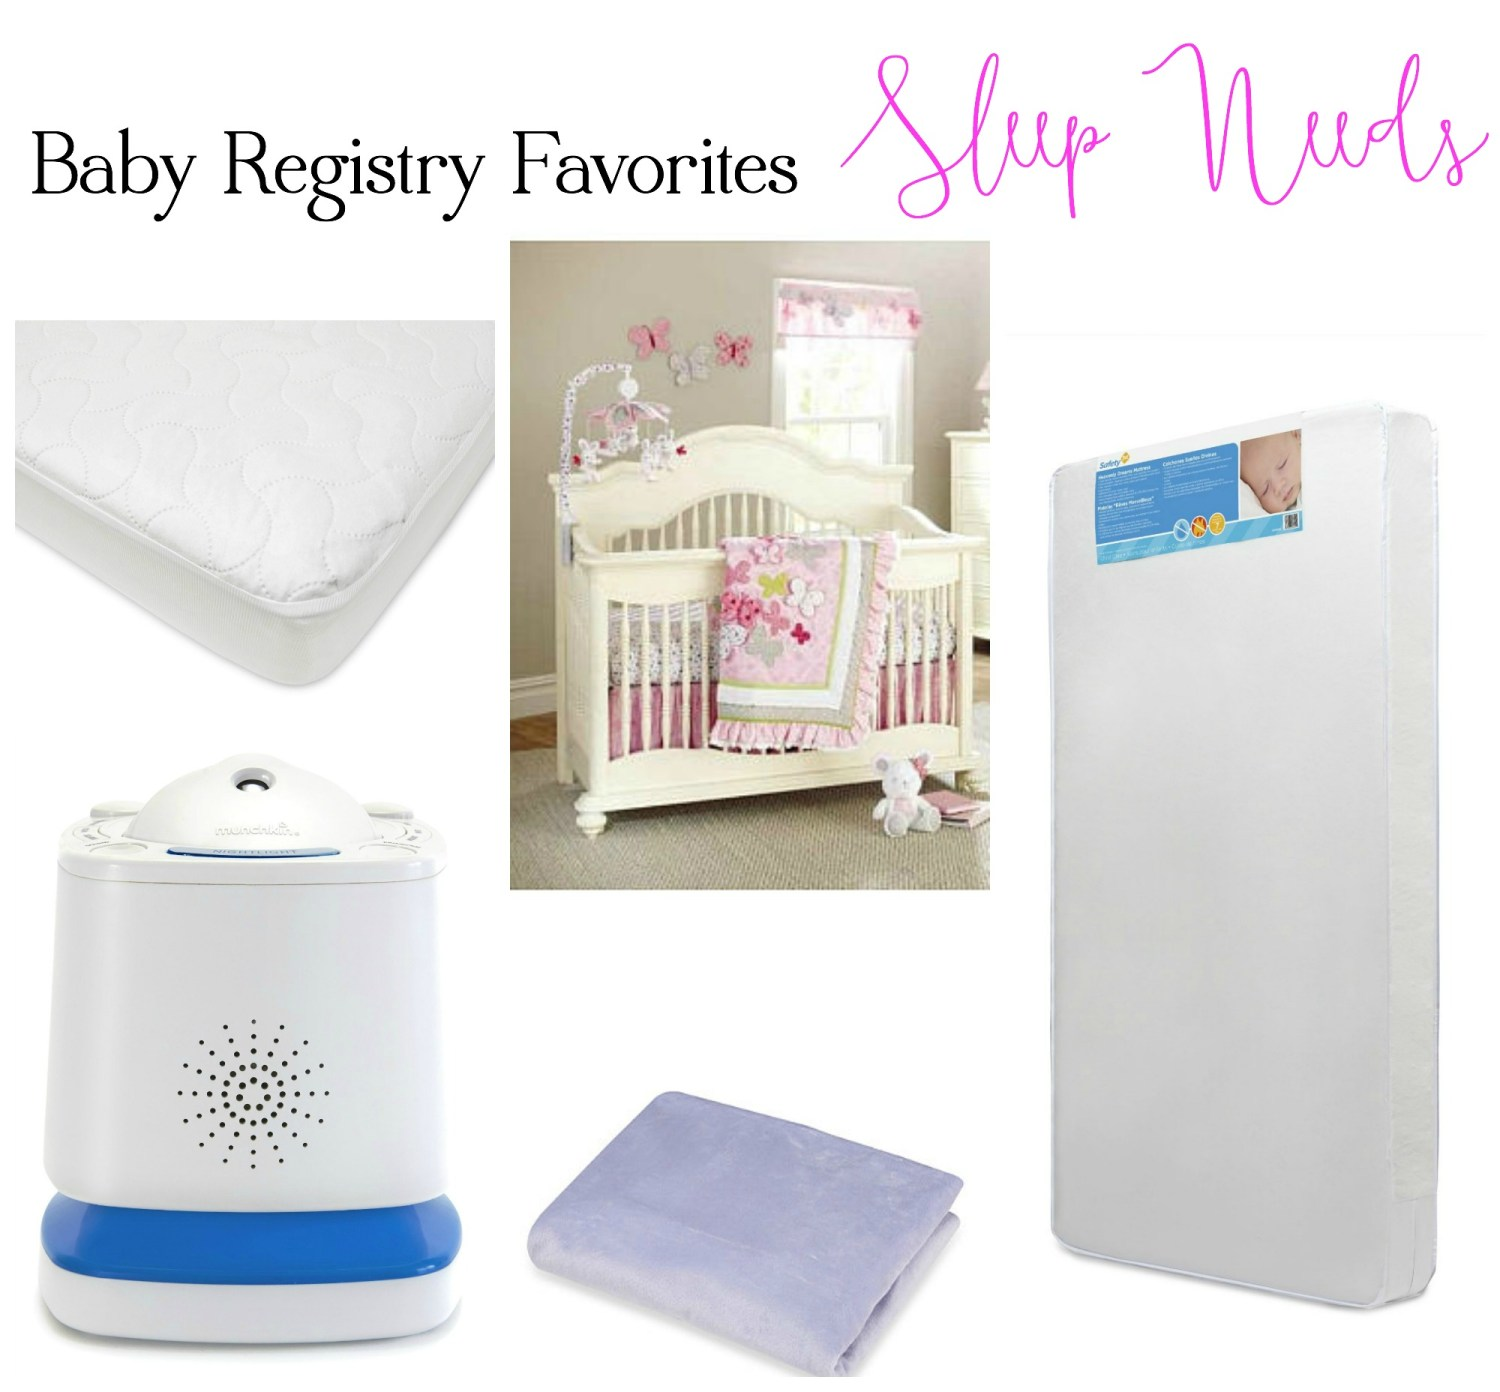 Second baby registry: This blog post covers all of the items that I absolutely loved using with our first baby and will continue to use with our second baby. There are so many baby items out there, but this list is tried and true! You truly cannot go wrong with any item on this list for your baby. This list covers diapering, feeding, wellness, travel, play, and much more.